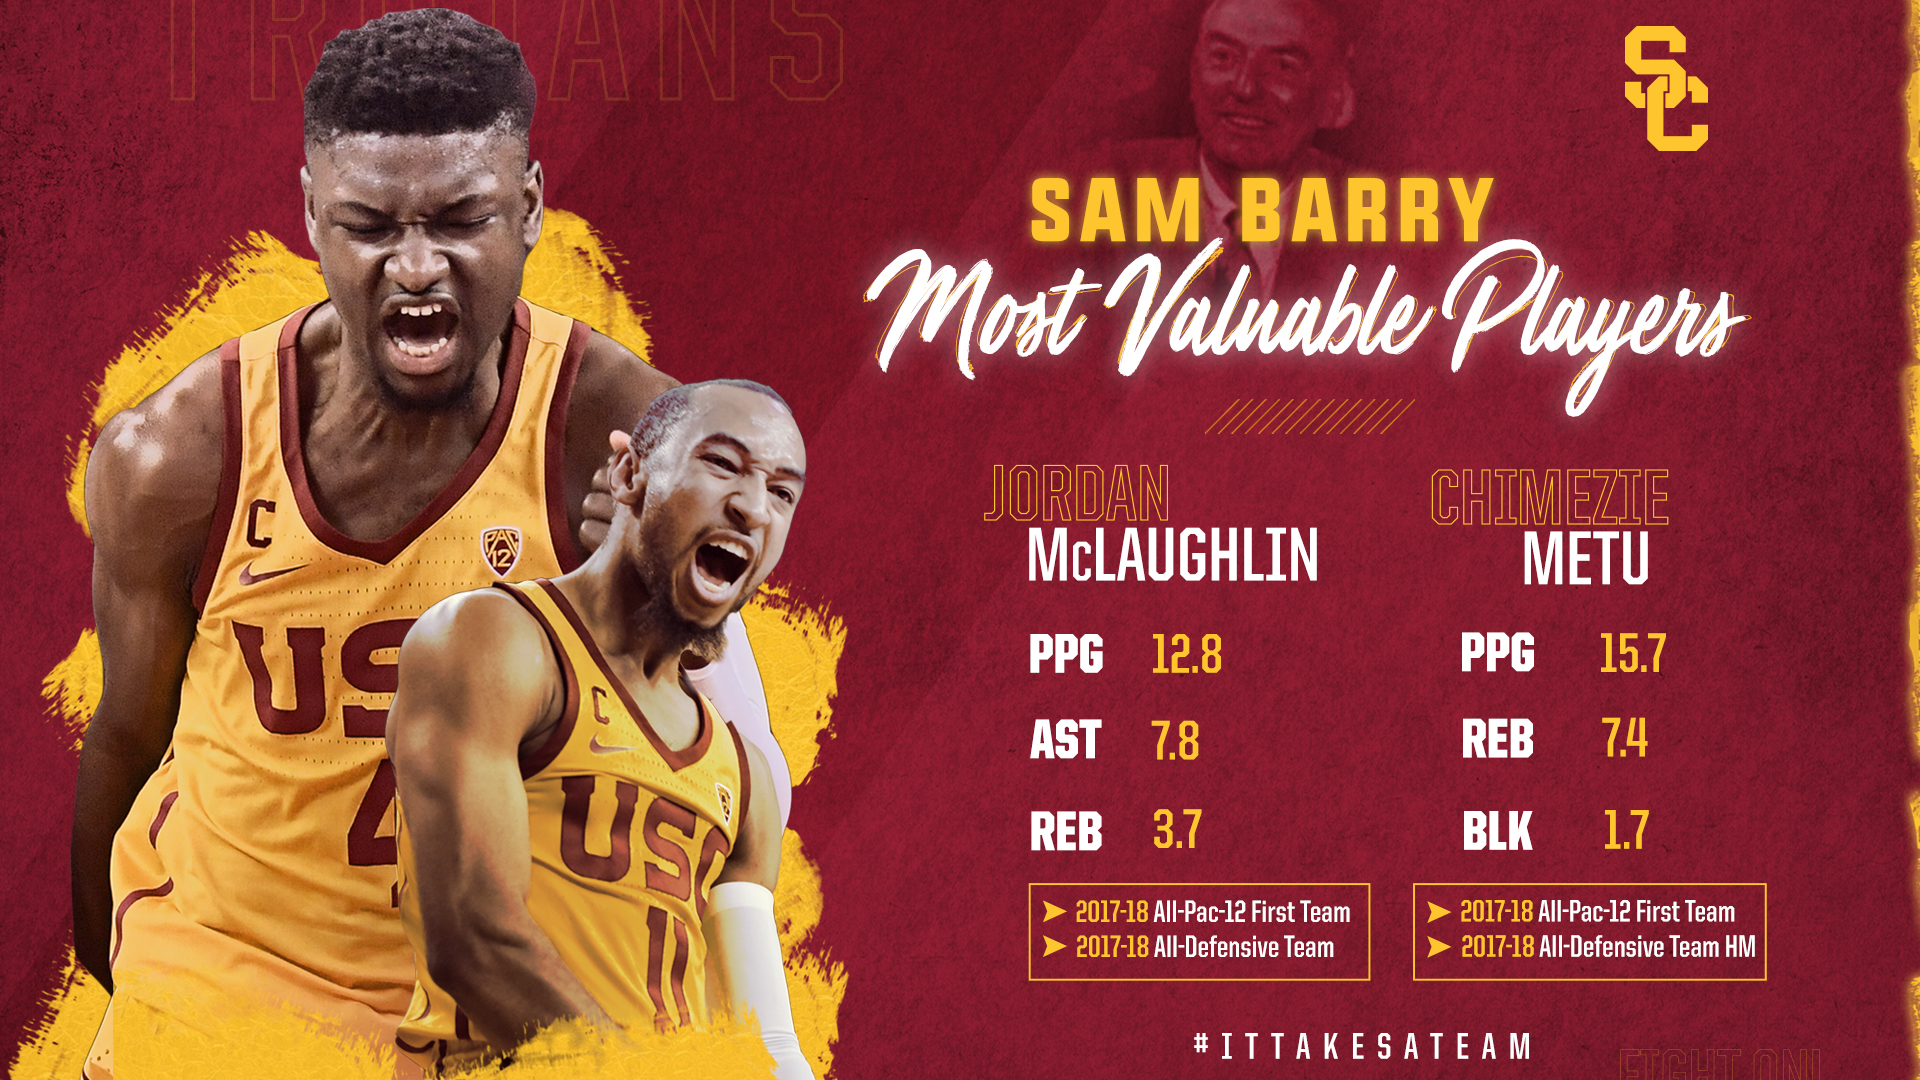 USC Holds Men\'s Basketball Awards Banquet - University of Southern ...